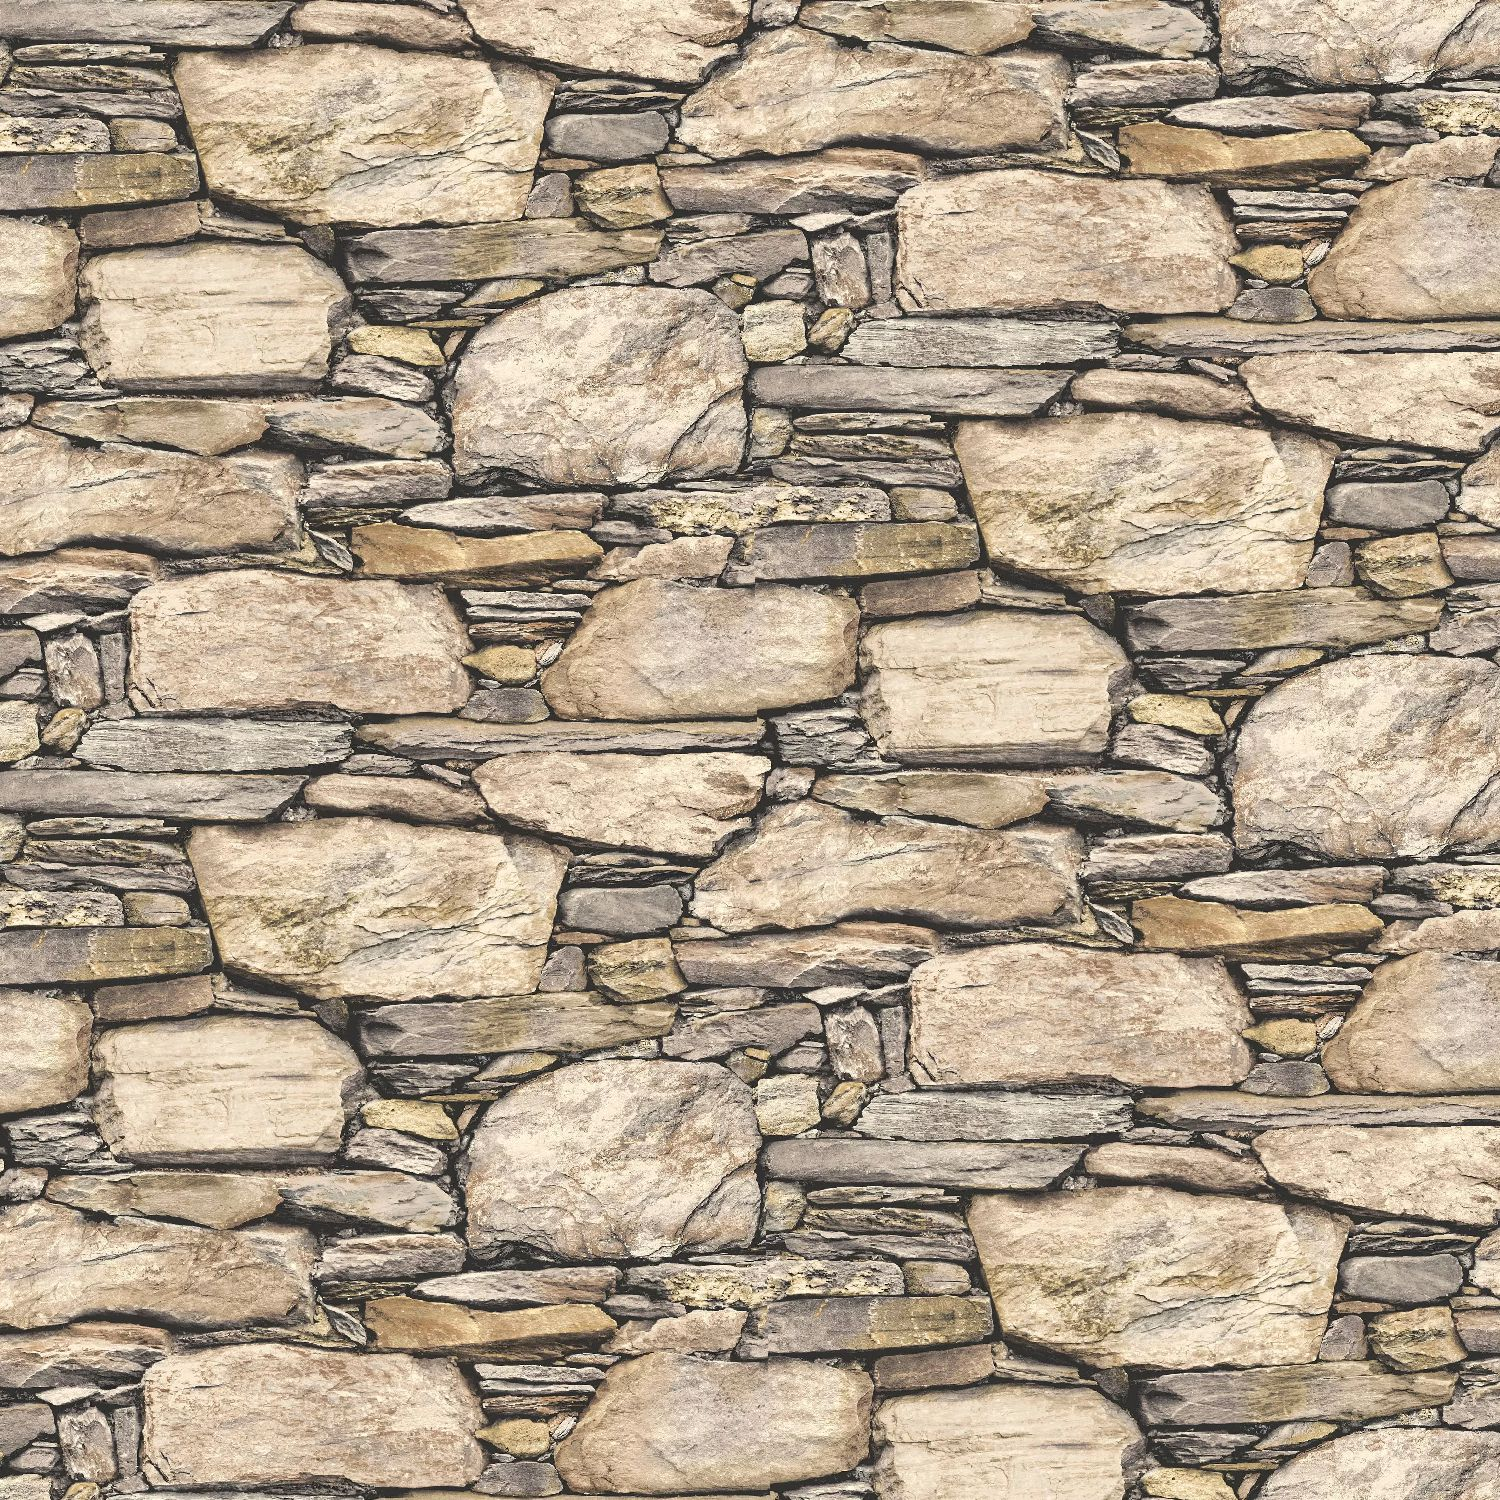 Dry Stacked Sand Stone Wall